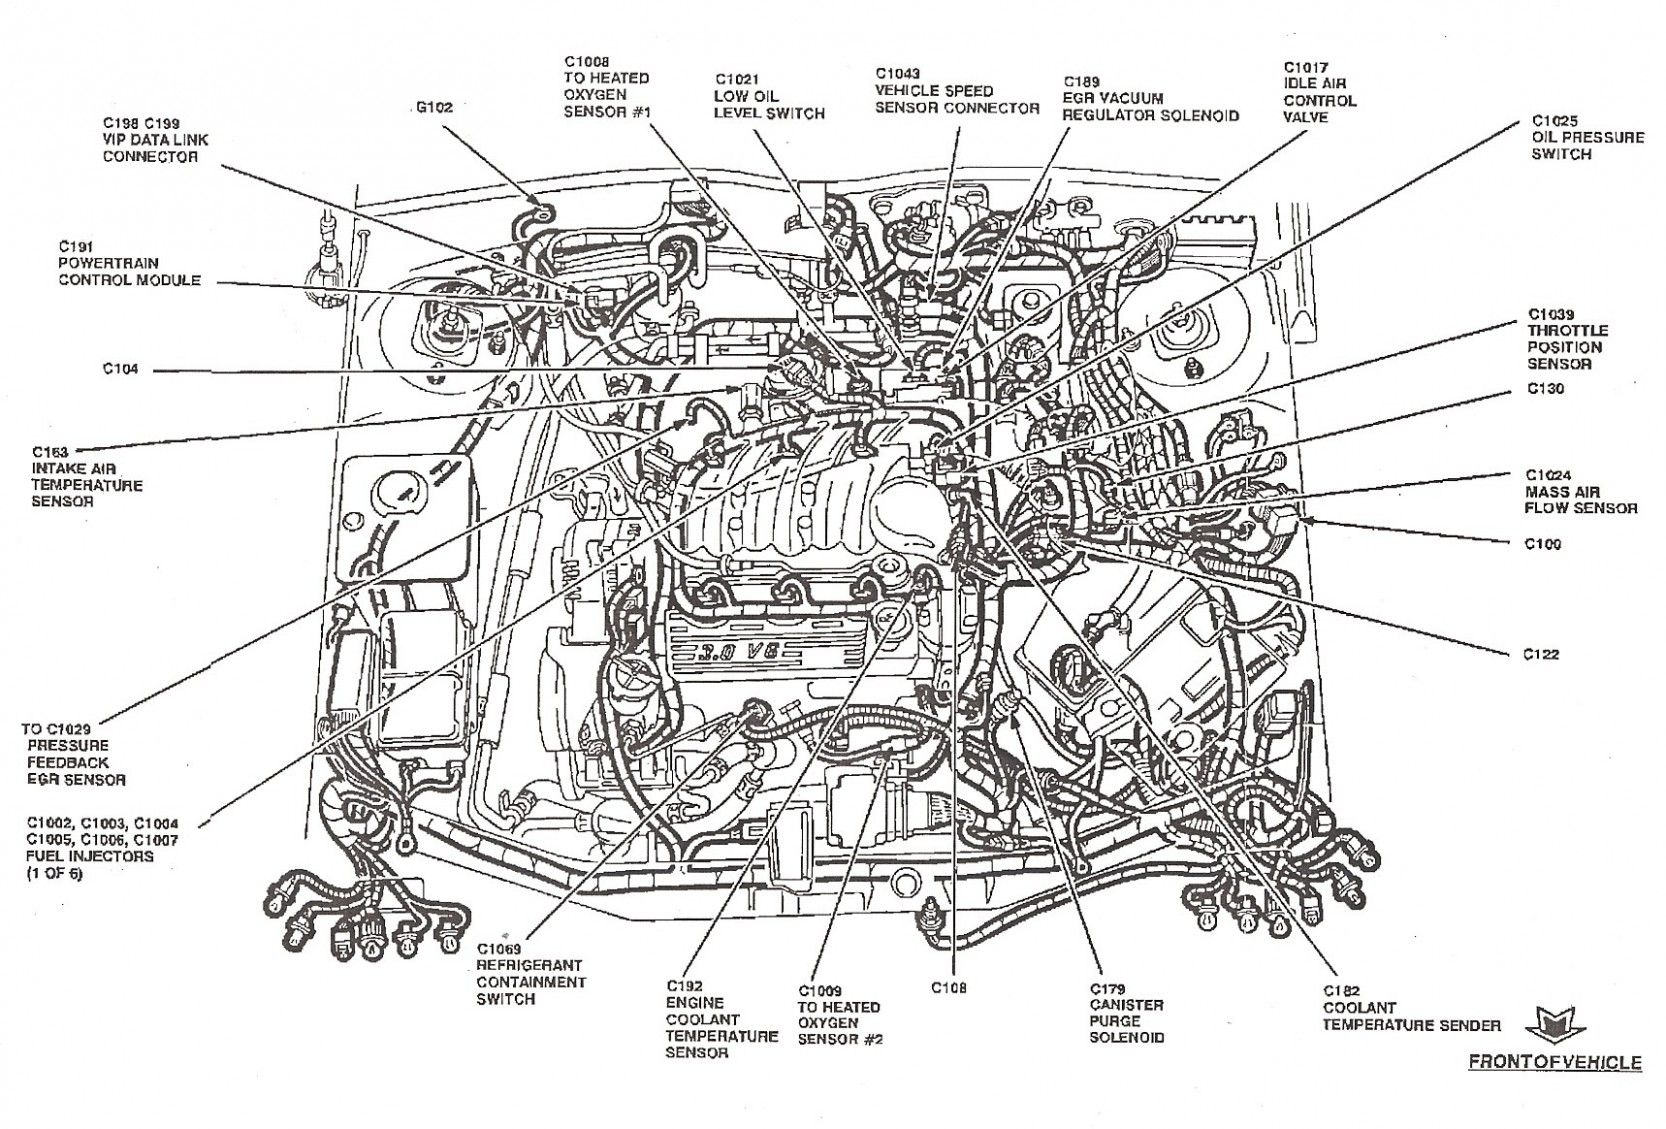 [DIAGRAM] 1972 Oldsmobile Cutlass Engine Diagram FULL